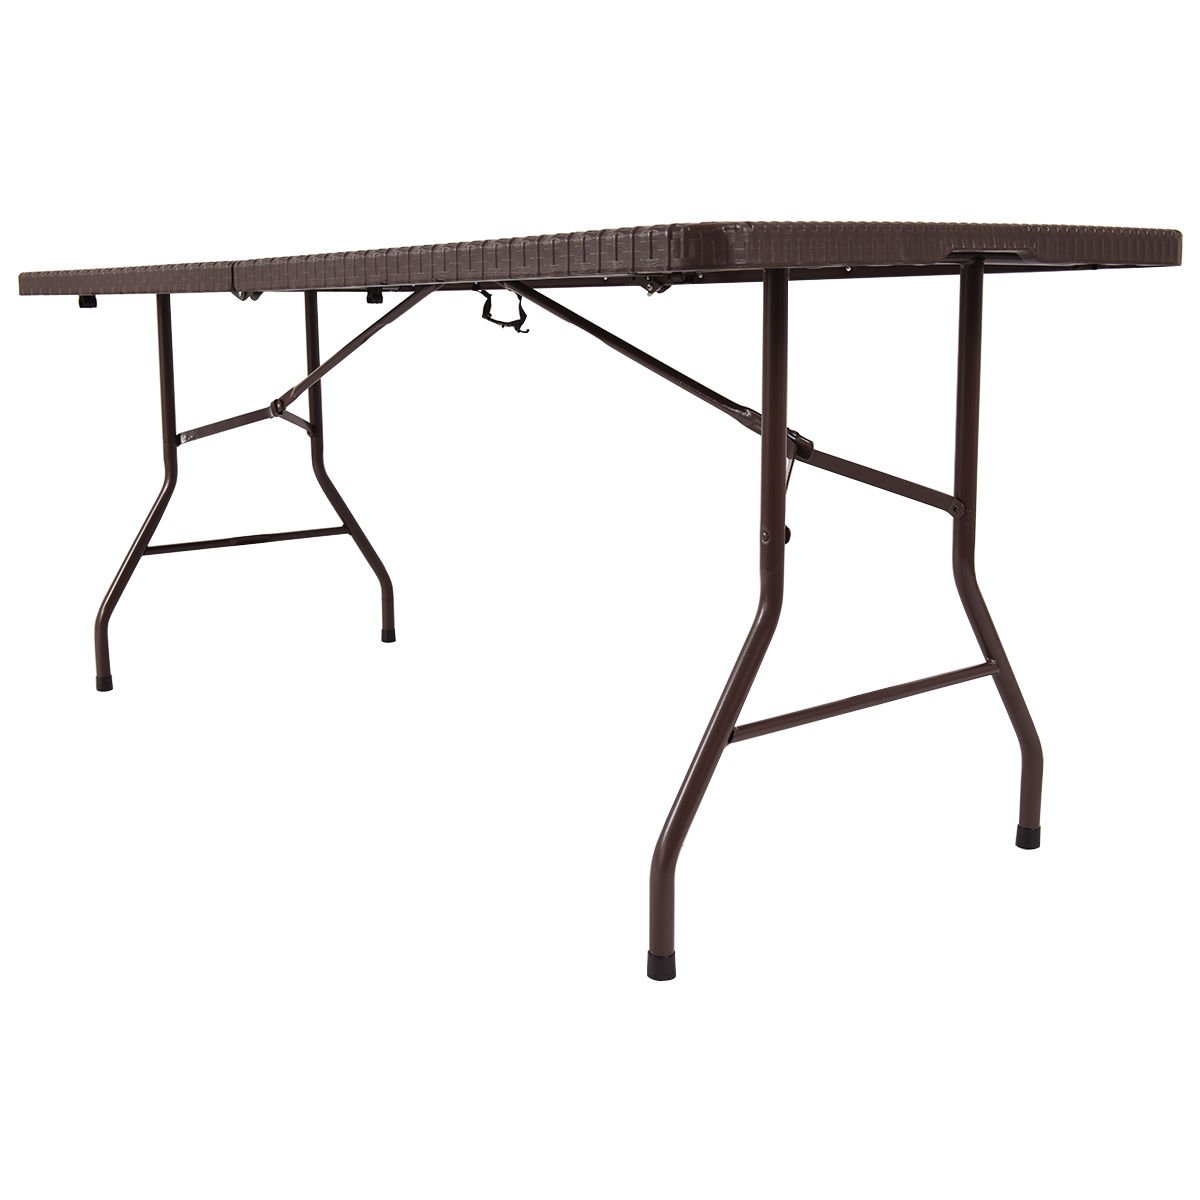 TANGKULA 6u0027 Center Folding Table Portable Rattan Design Indoor Outdoor Use  With Carrying Handle   Folding Table U003c Tables U003c Sports U0026 Outdoors   TIBS